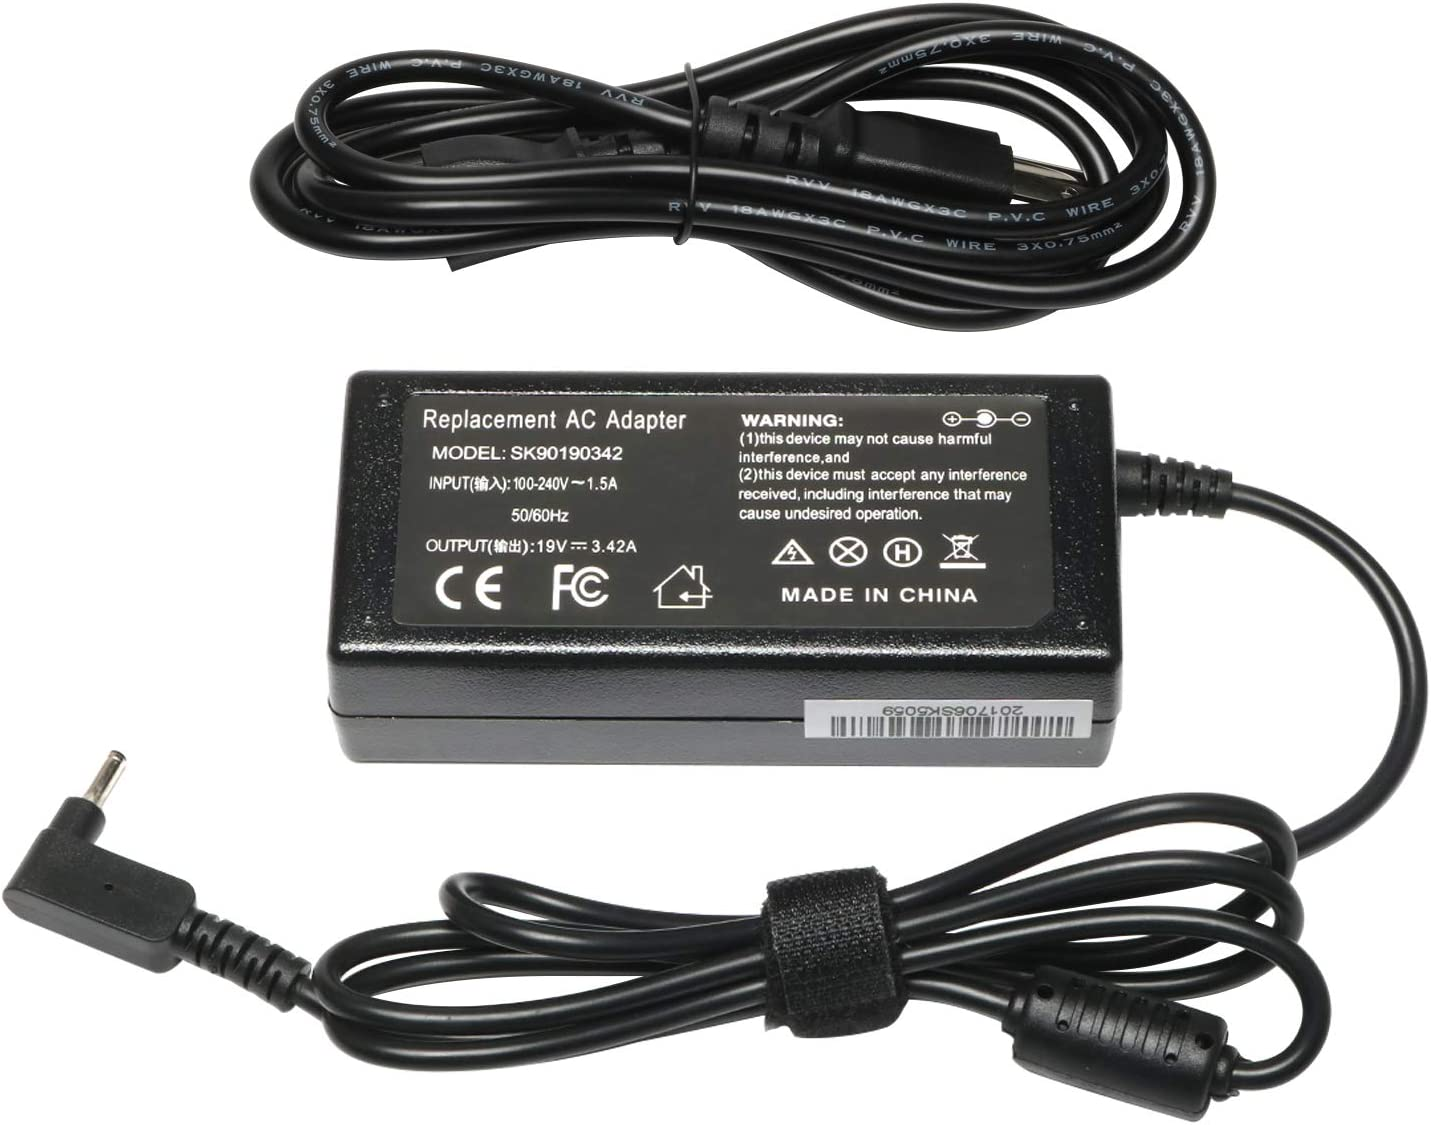 Efficient and Stable AISENBO 19V 3.42A 65W Laptop Adapter Charger for Acer Chromebook 11 13 14 15 CB3 CB5 C720 C720P C740 C910 Acer Aspire P3 S7 Acer Iconia W700 W700P AC Power Supply